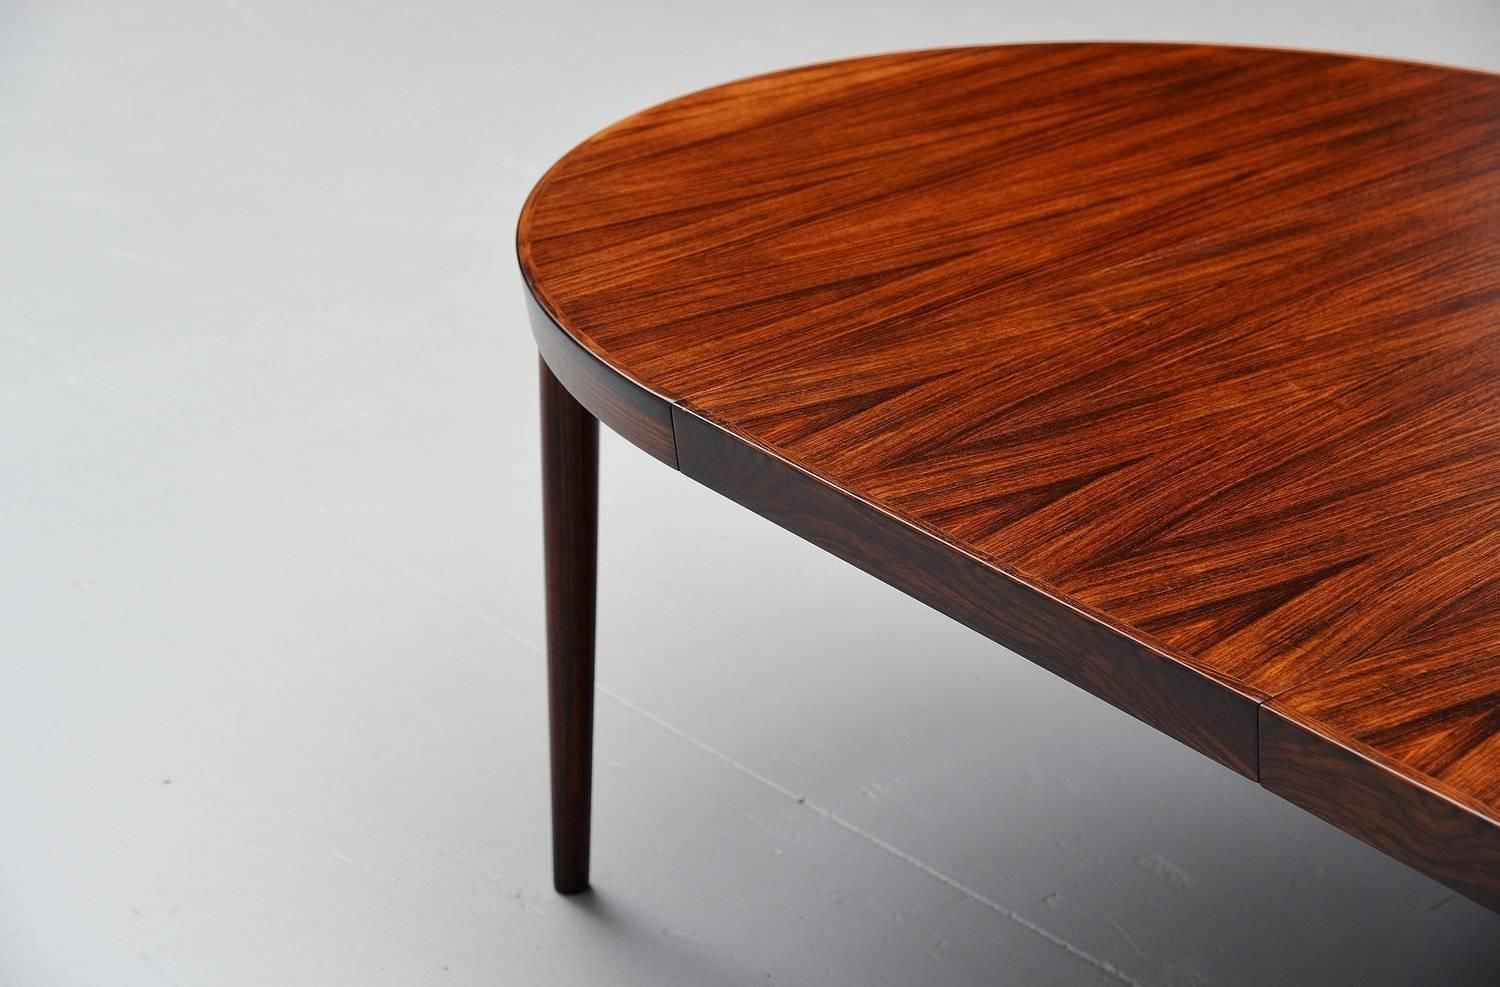 Kai Kristiansen Oval Rosewood Dining Table Denmark 1960